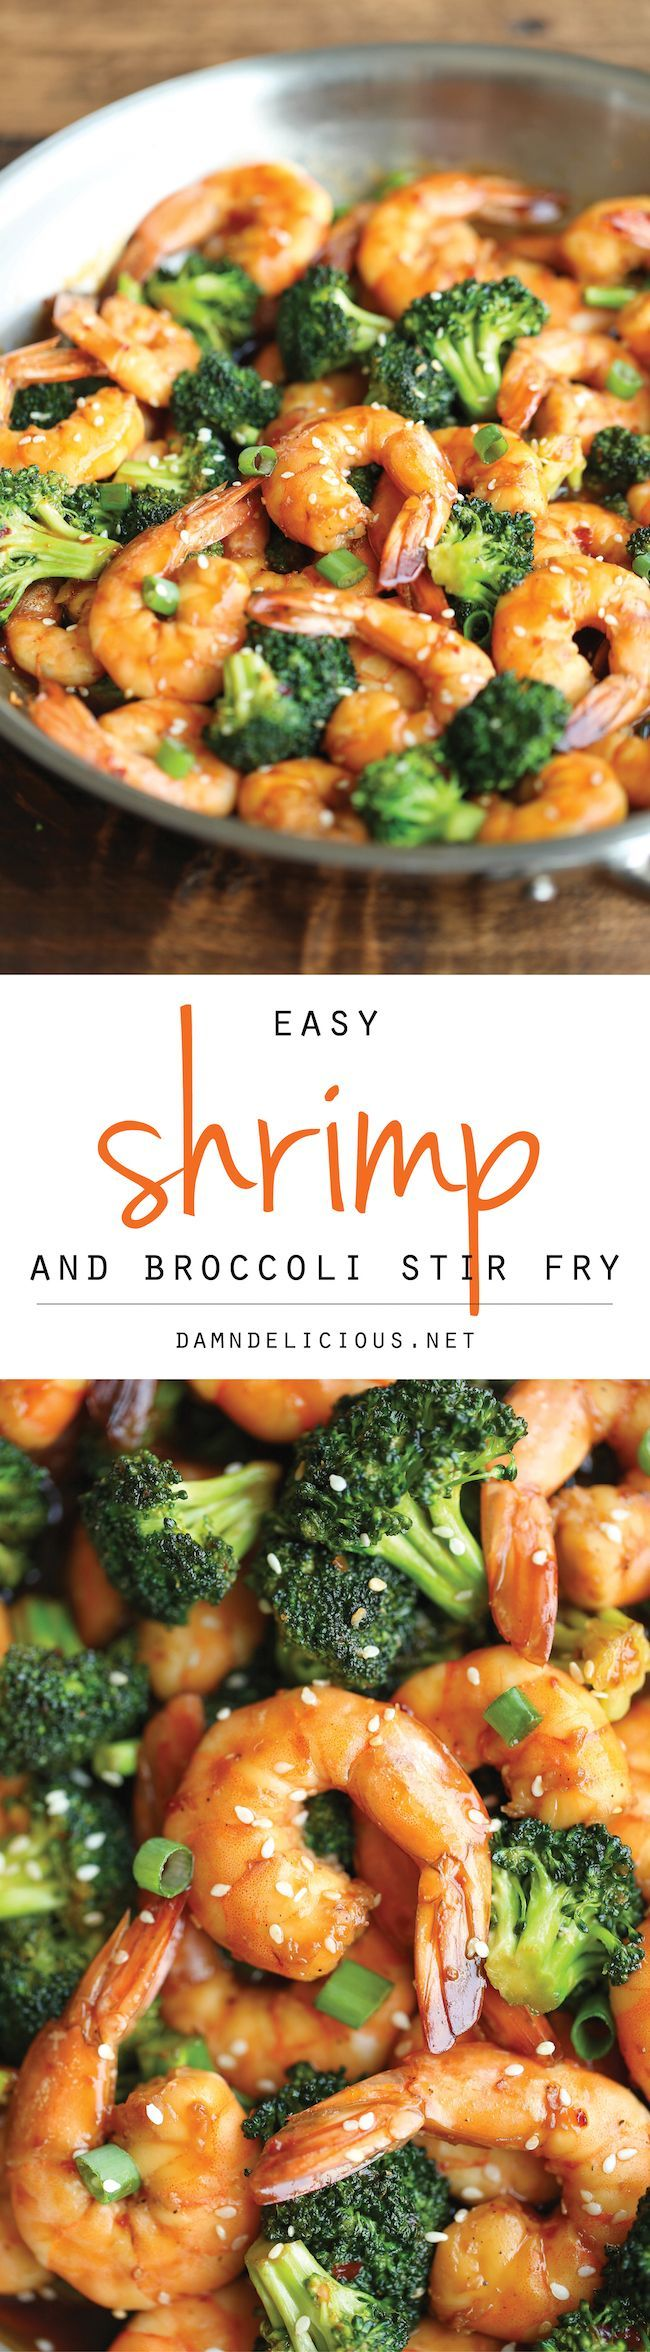 Easy Shrimp and Broccoli Stir Fry - The easiest stir fry you will ever make in just 20 min